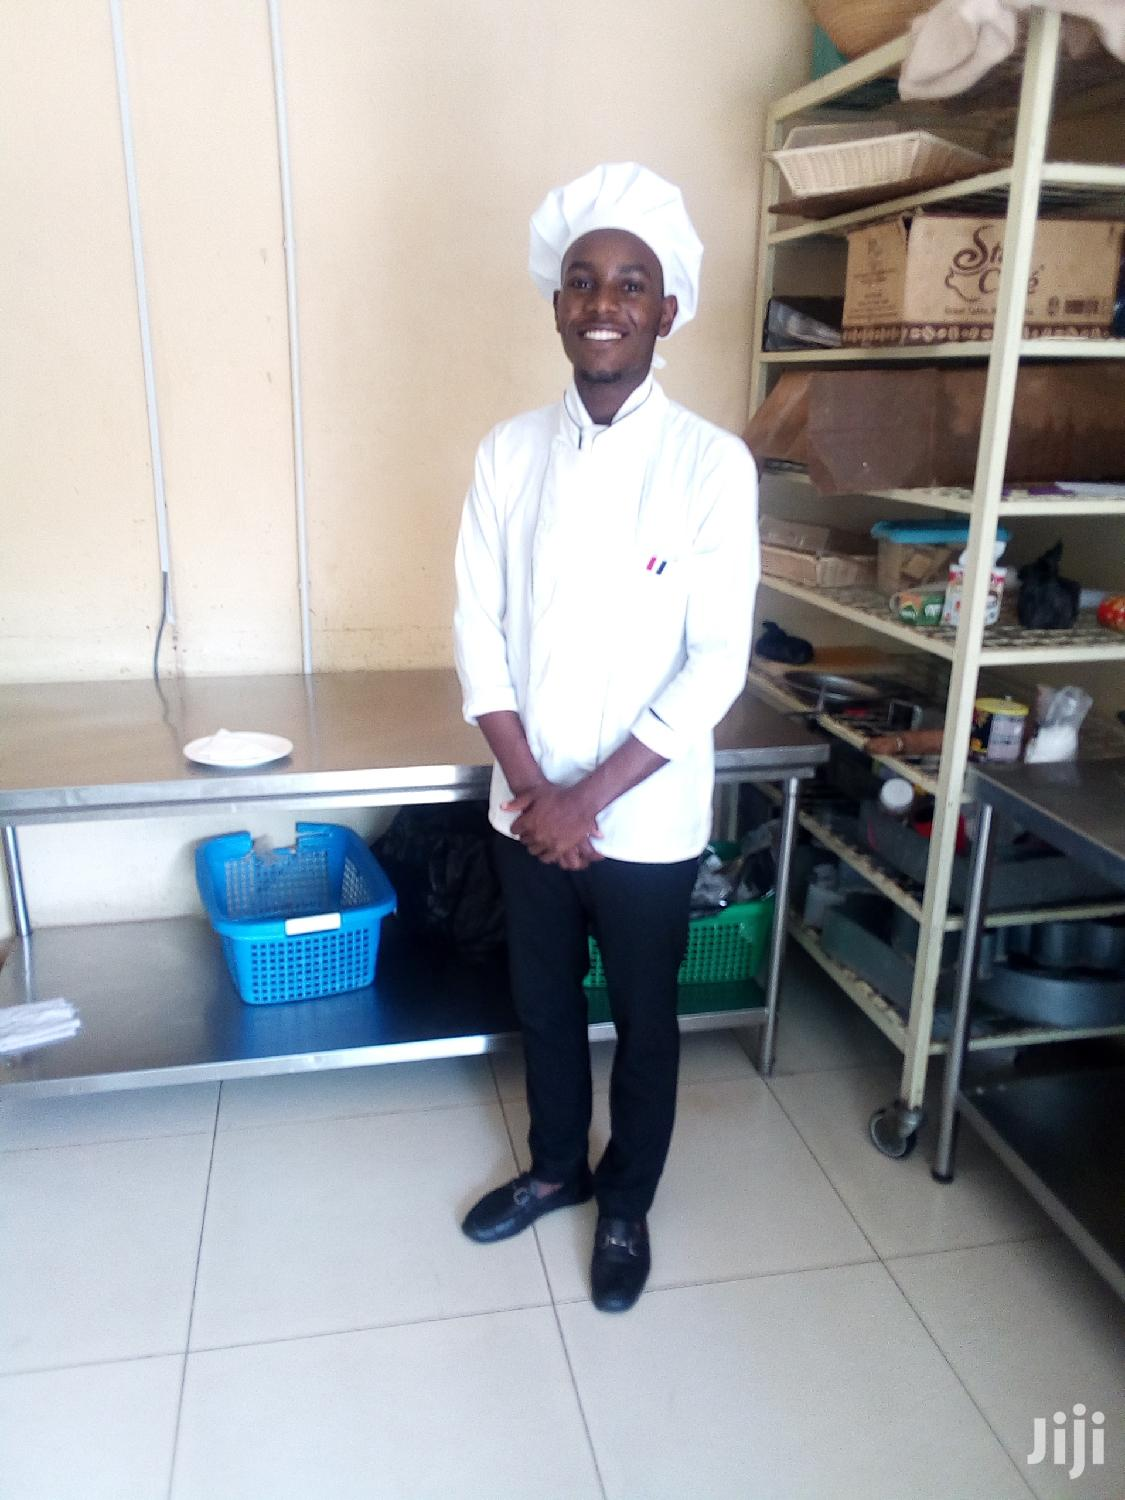 Waiters Waitresses, Cleaners, Shop Attendants   Housekeeping & Cleaning CVs for sale in Kampala, Central Region, Uganda